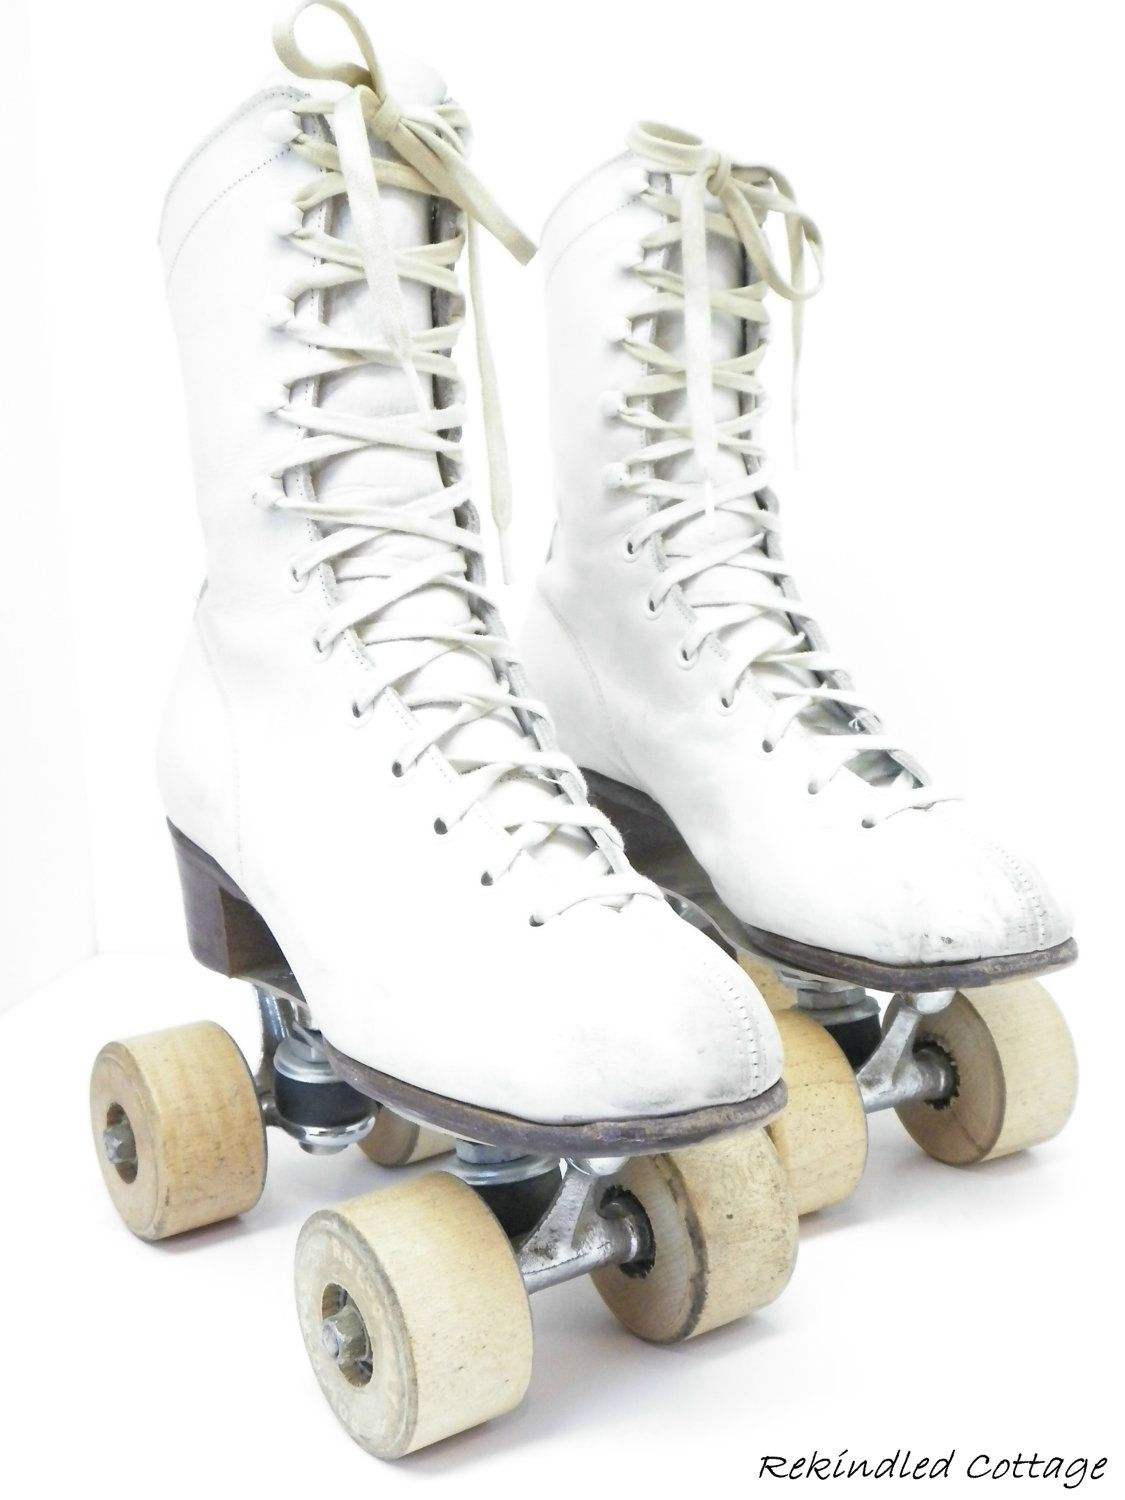 Roller skates for figure skating - Vintage Roller Skates My Twin Sister And I Each Got A Pair For Christmas And It Was Awesome We Skated Everywhere Outside And At The Skating